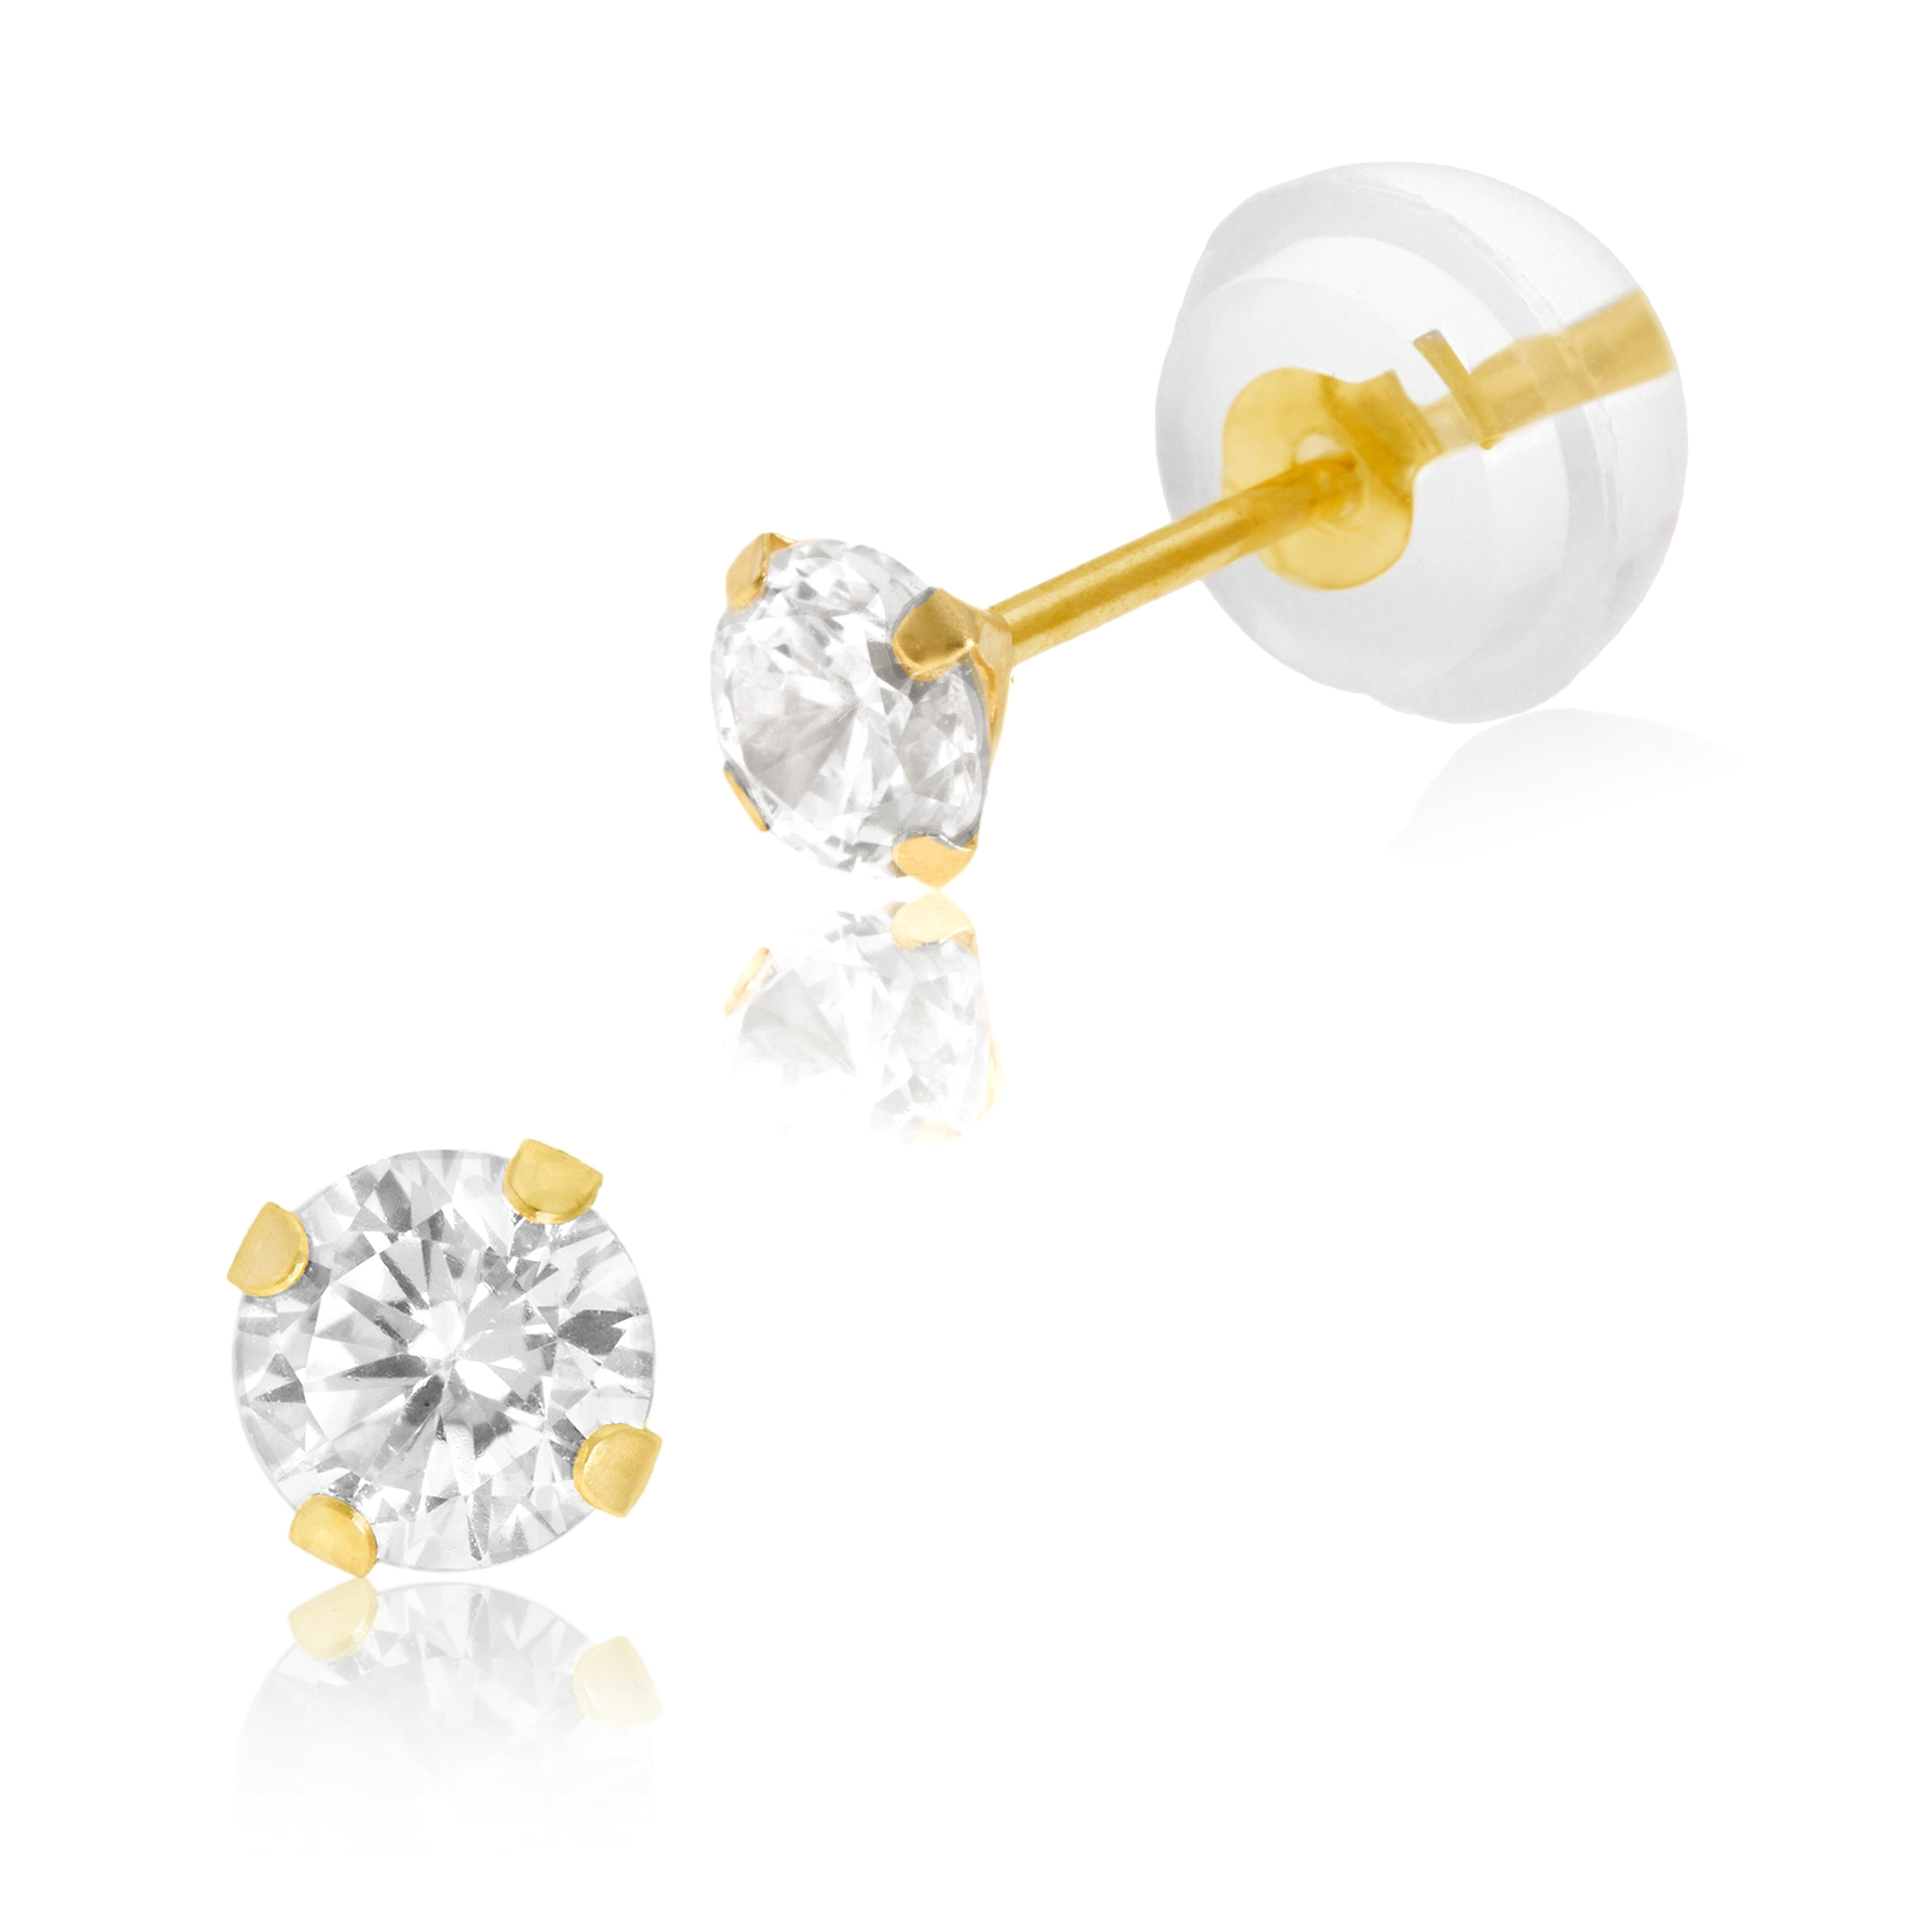 boucle d'oreille silicone